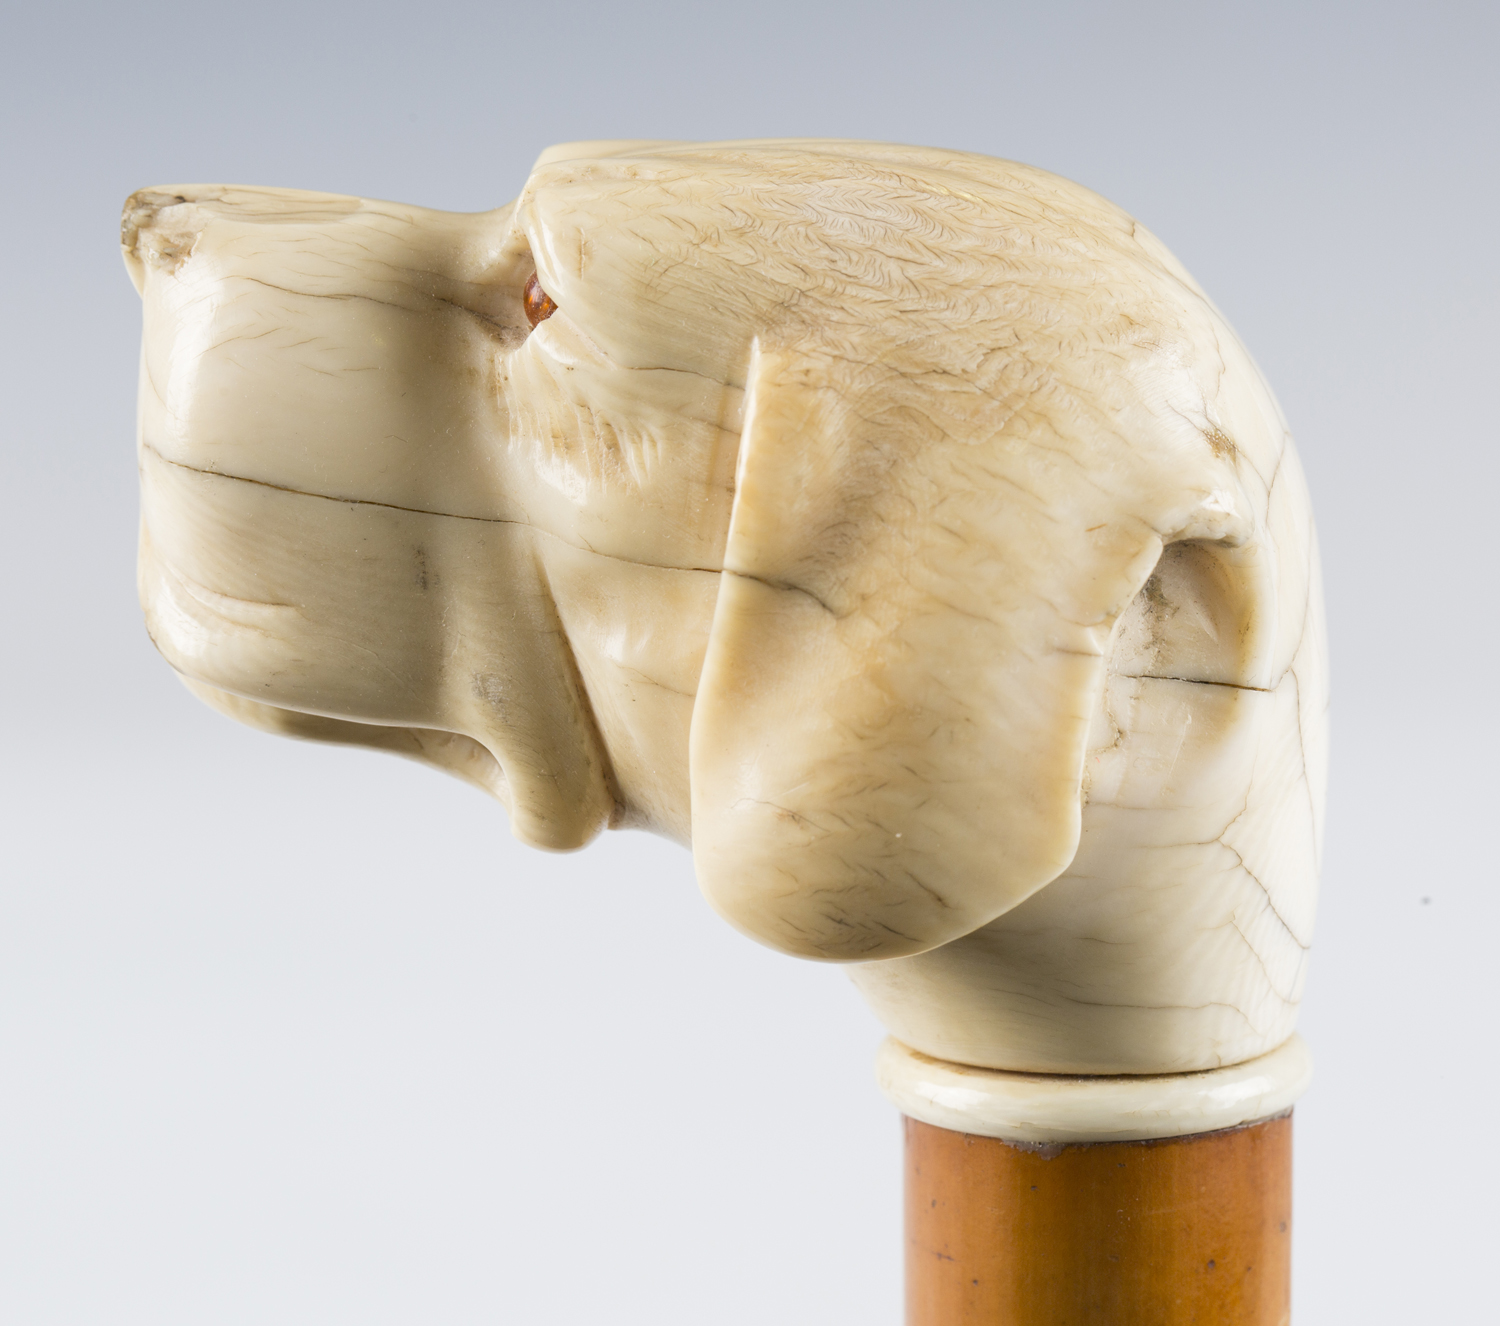 A 19th century Malacca walking cane, the substantial ivory handle finely carved as a dog's head with - Image 8 of 10